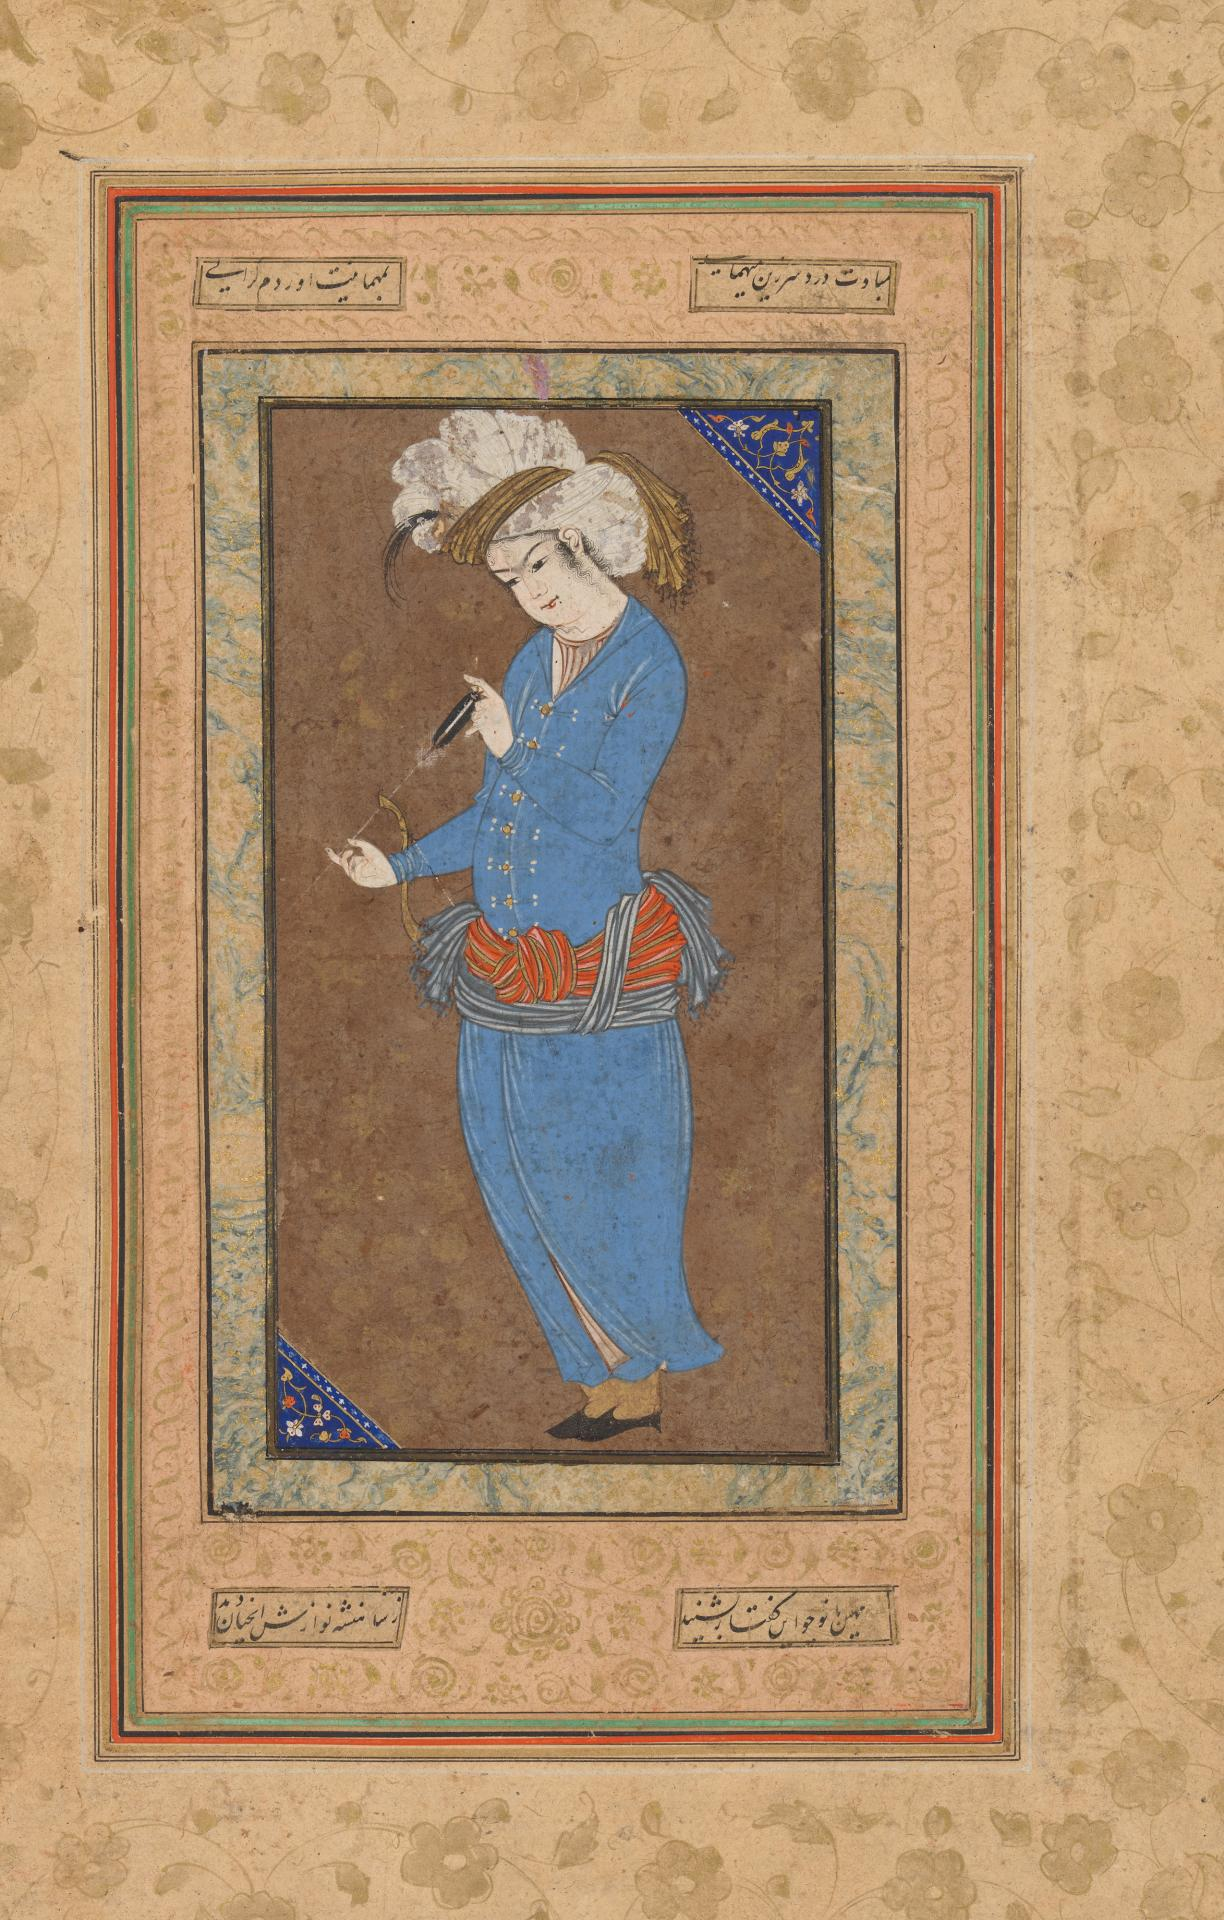 Portrait of a prince examining an arrow